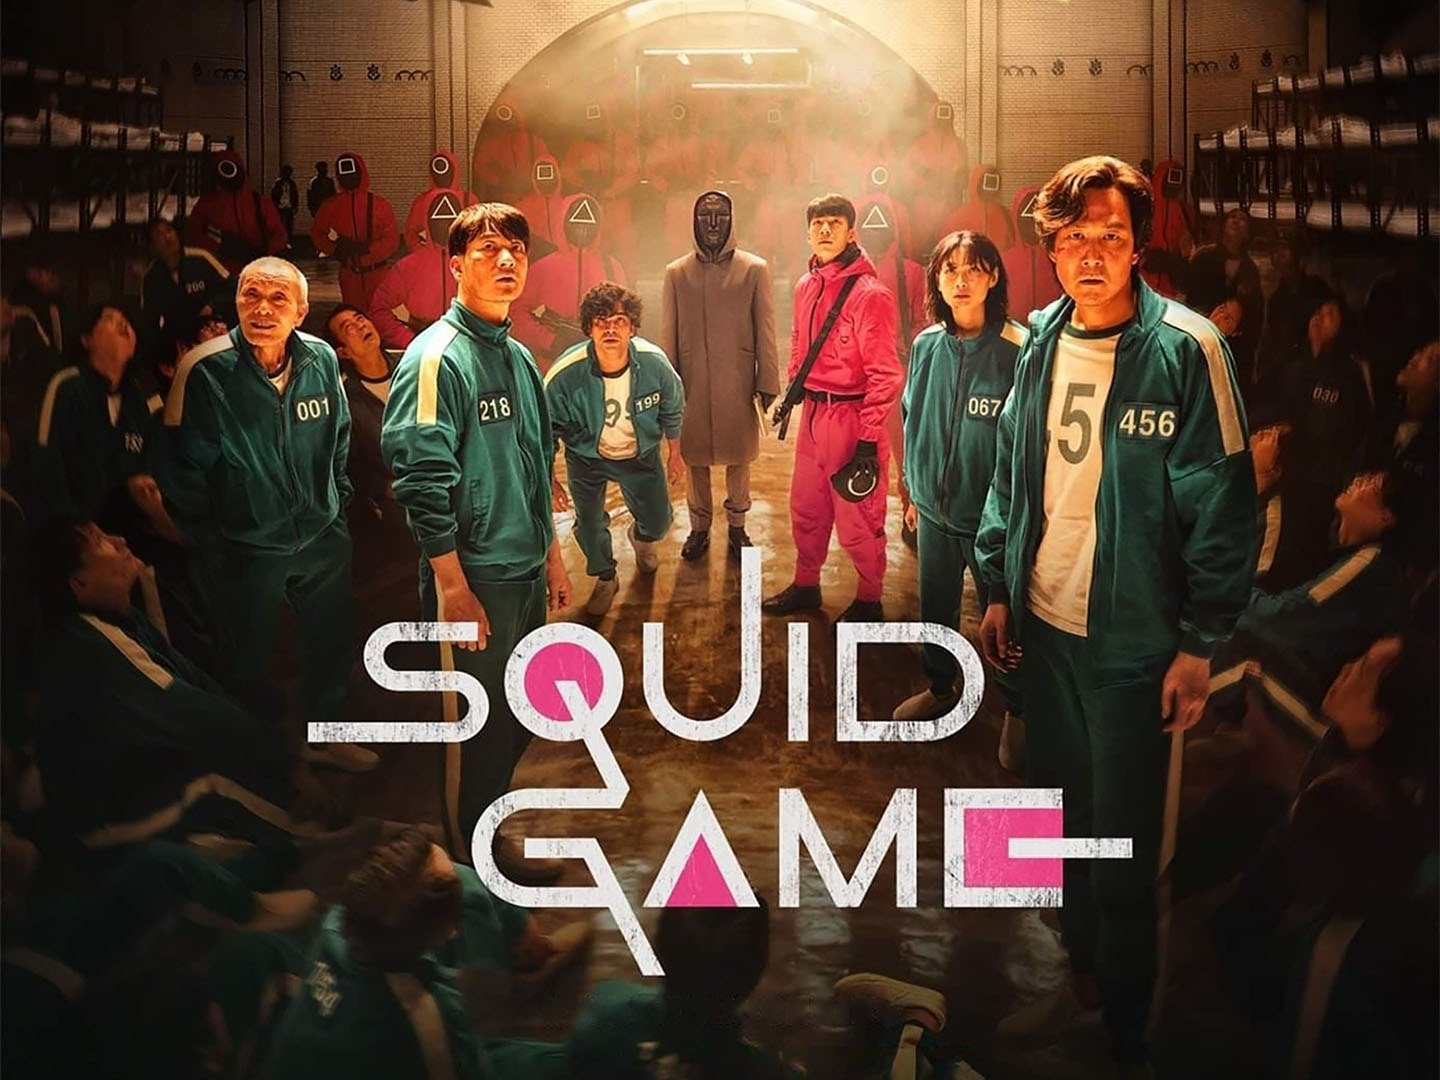 Does 456 Die in Squid Game and More On What Will Happen to Seong Gi-hun's Fate